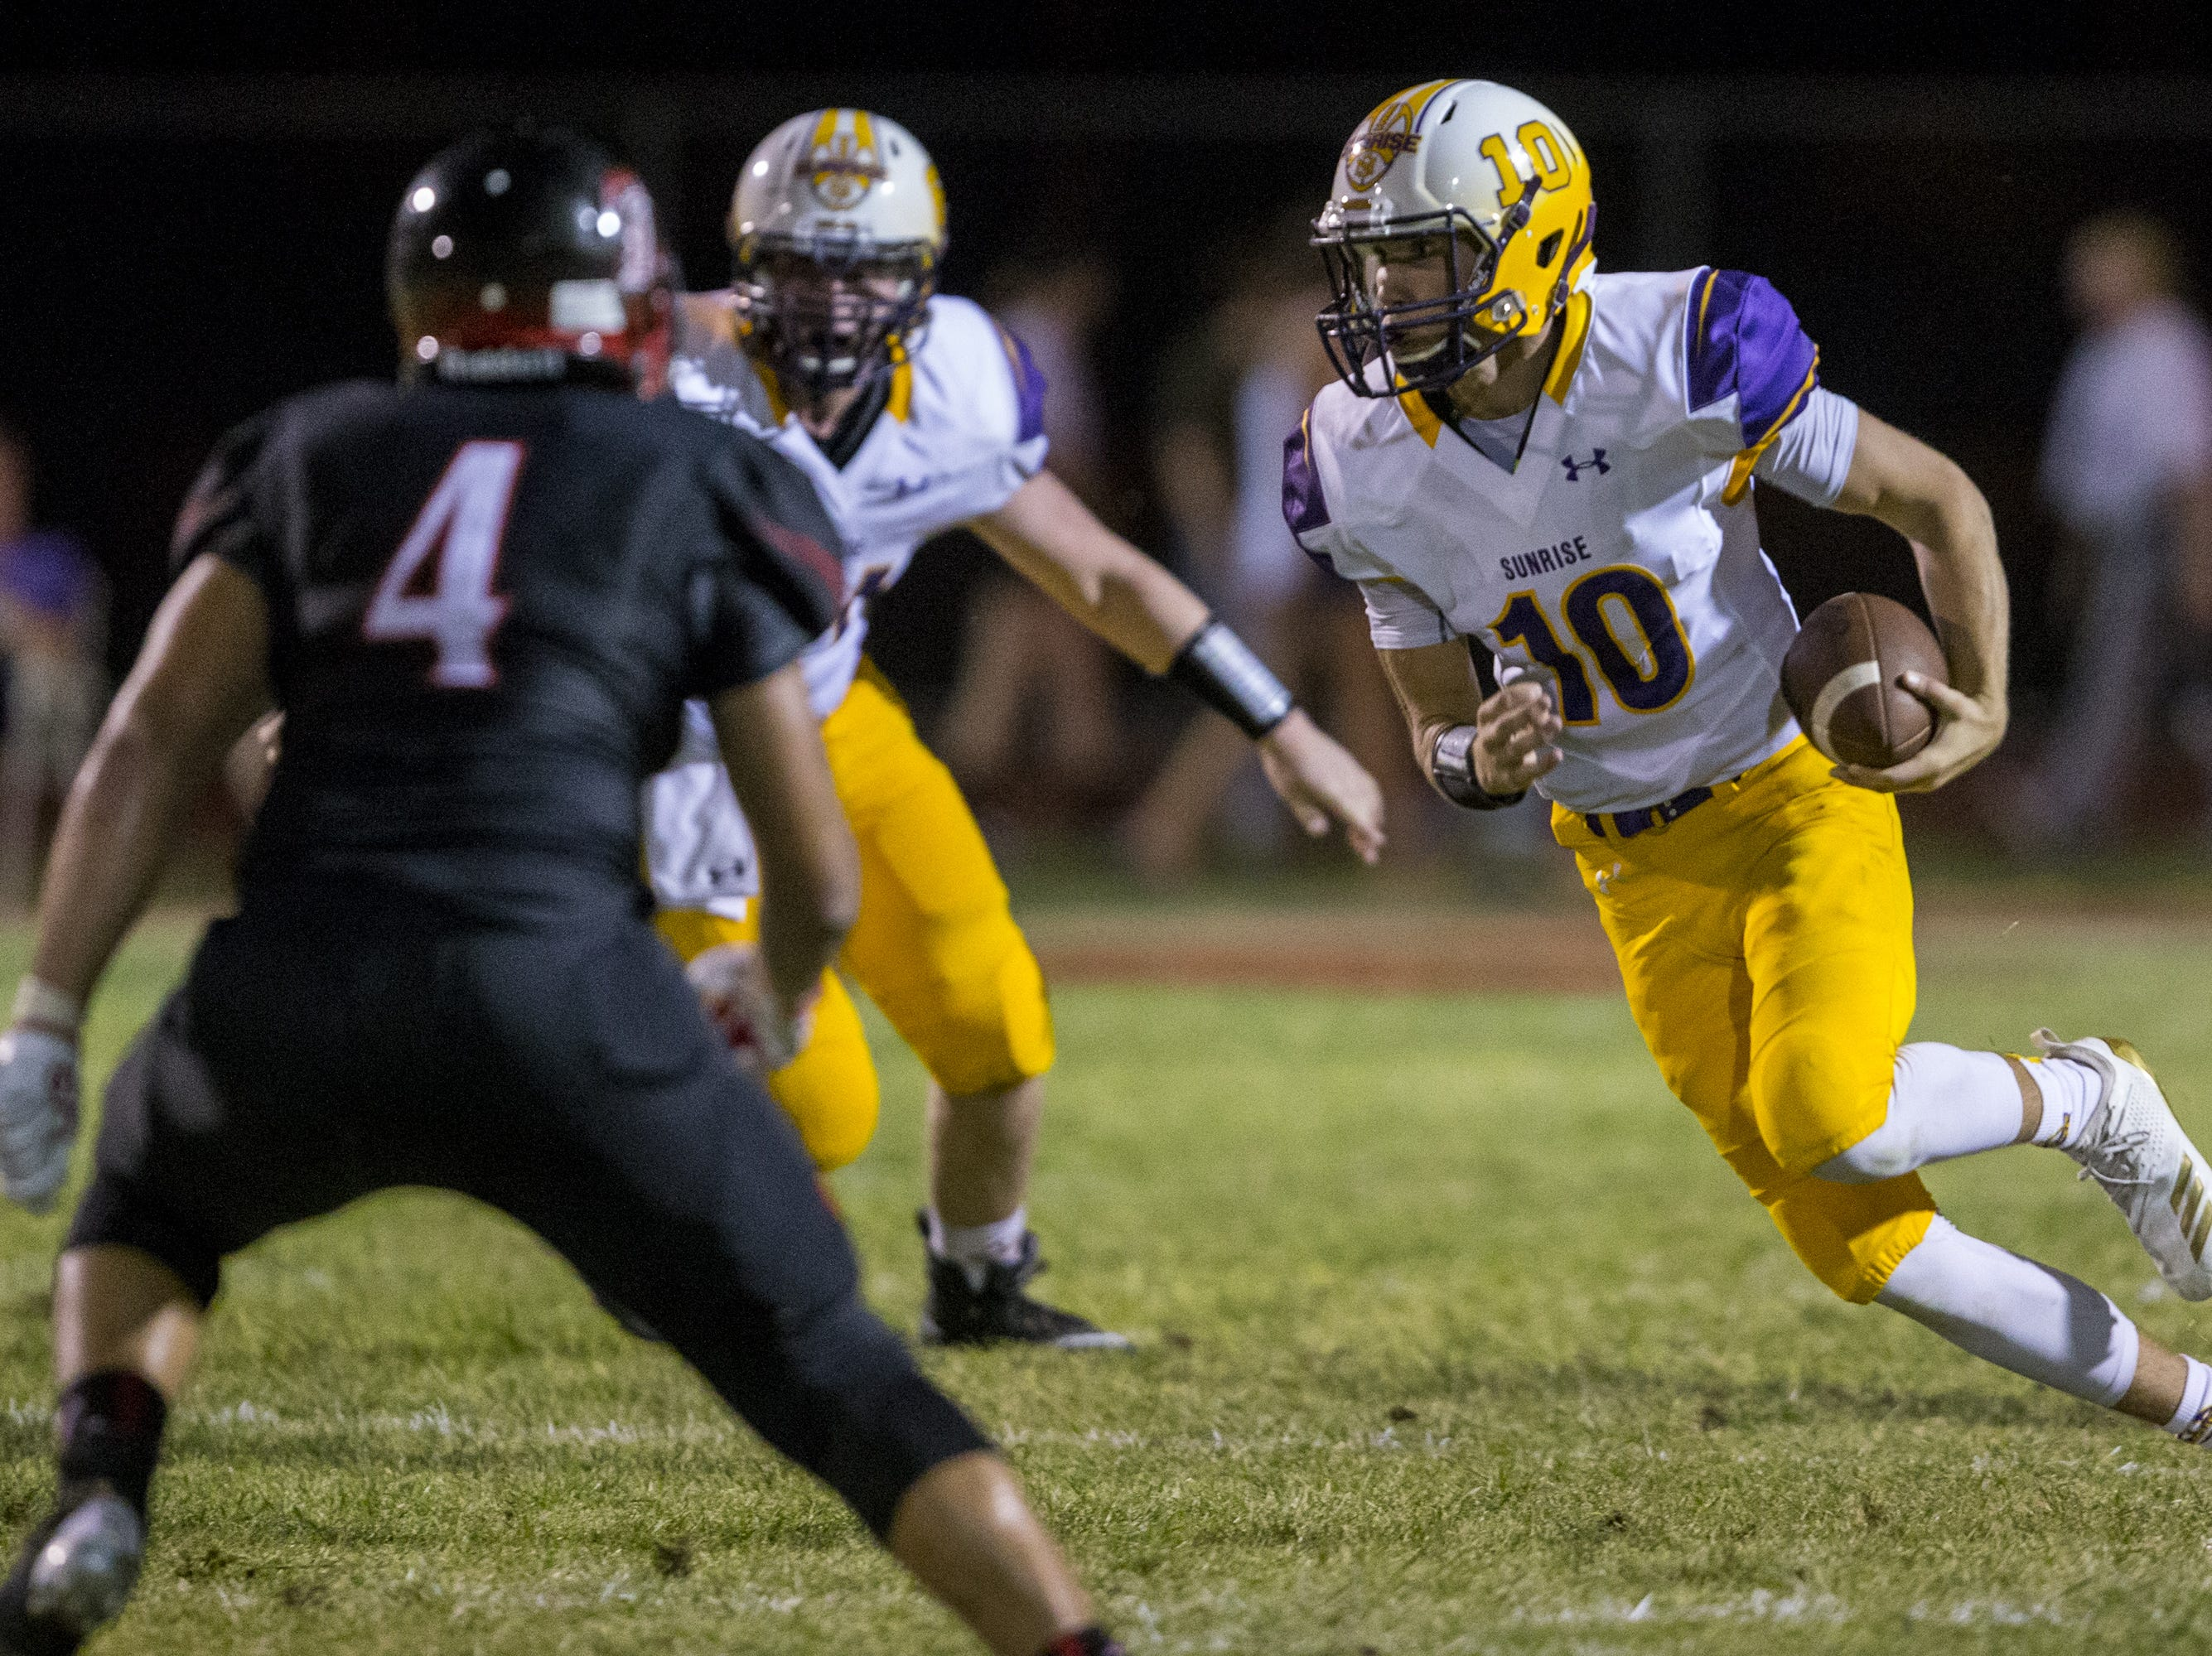 Sunrise Mountain's Keegan Freid rushes against Libery in the 2nd quarter on Friday, Aug. 31, 2018, at Liberty High School in Peoria, Ariz.  #azhsfb